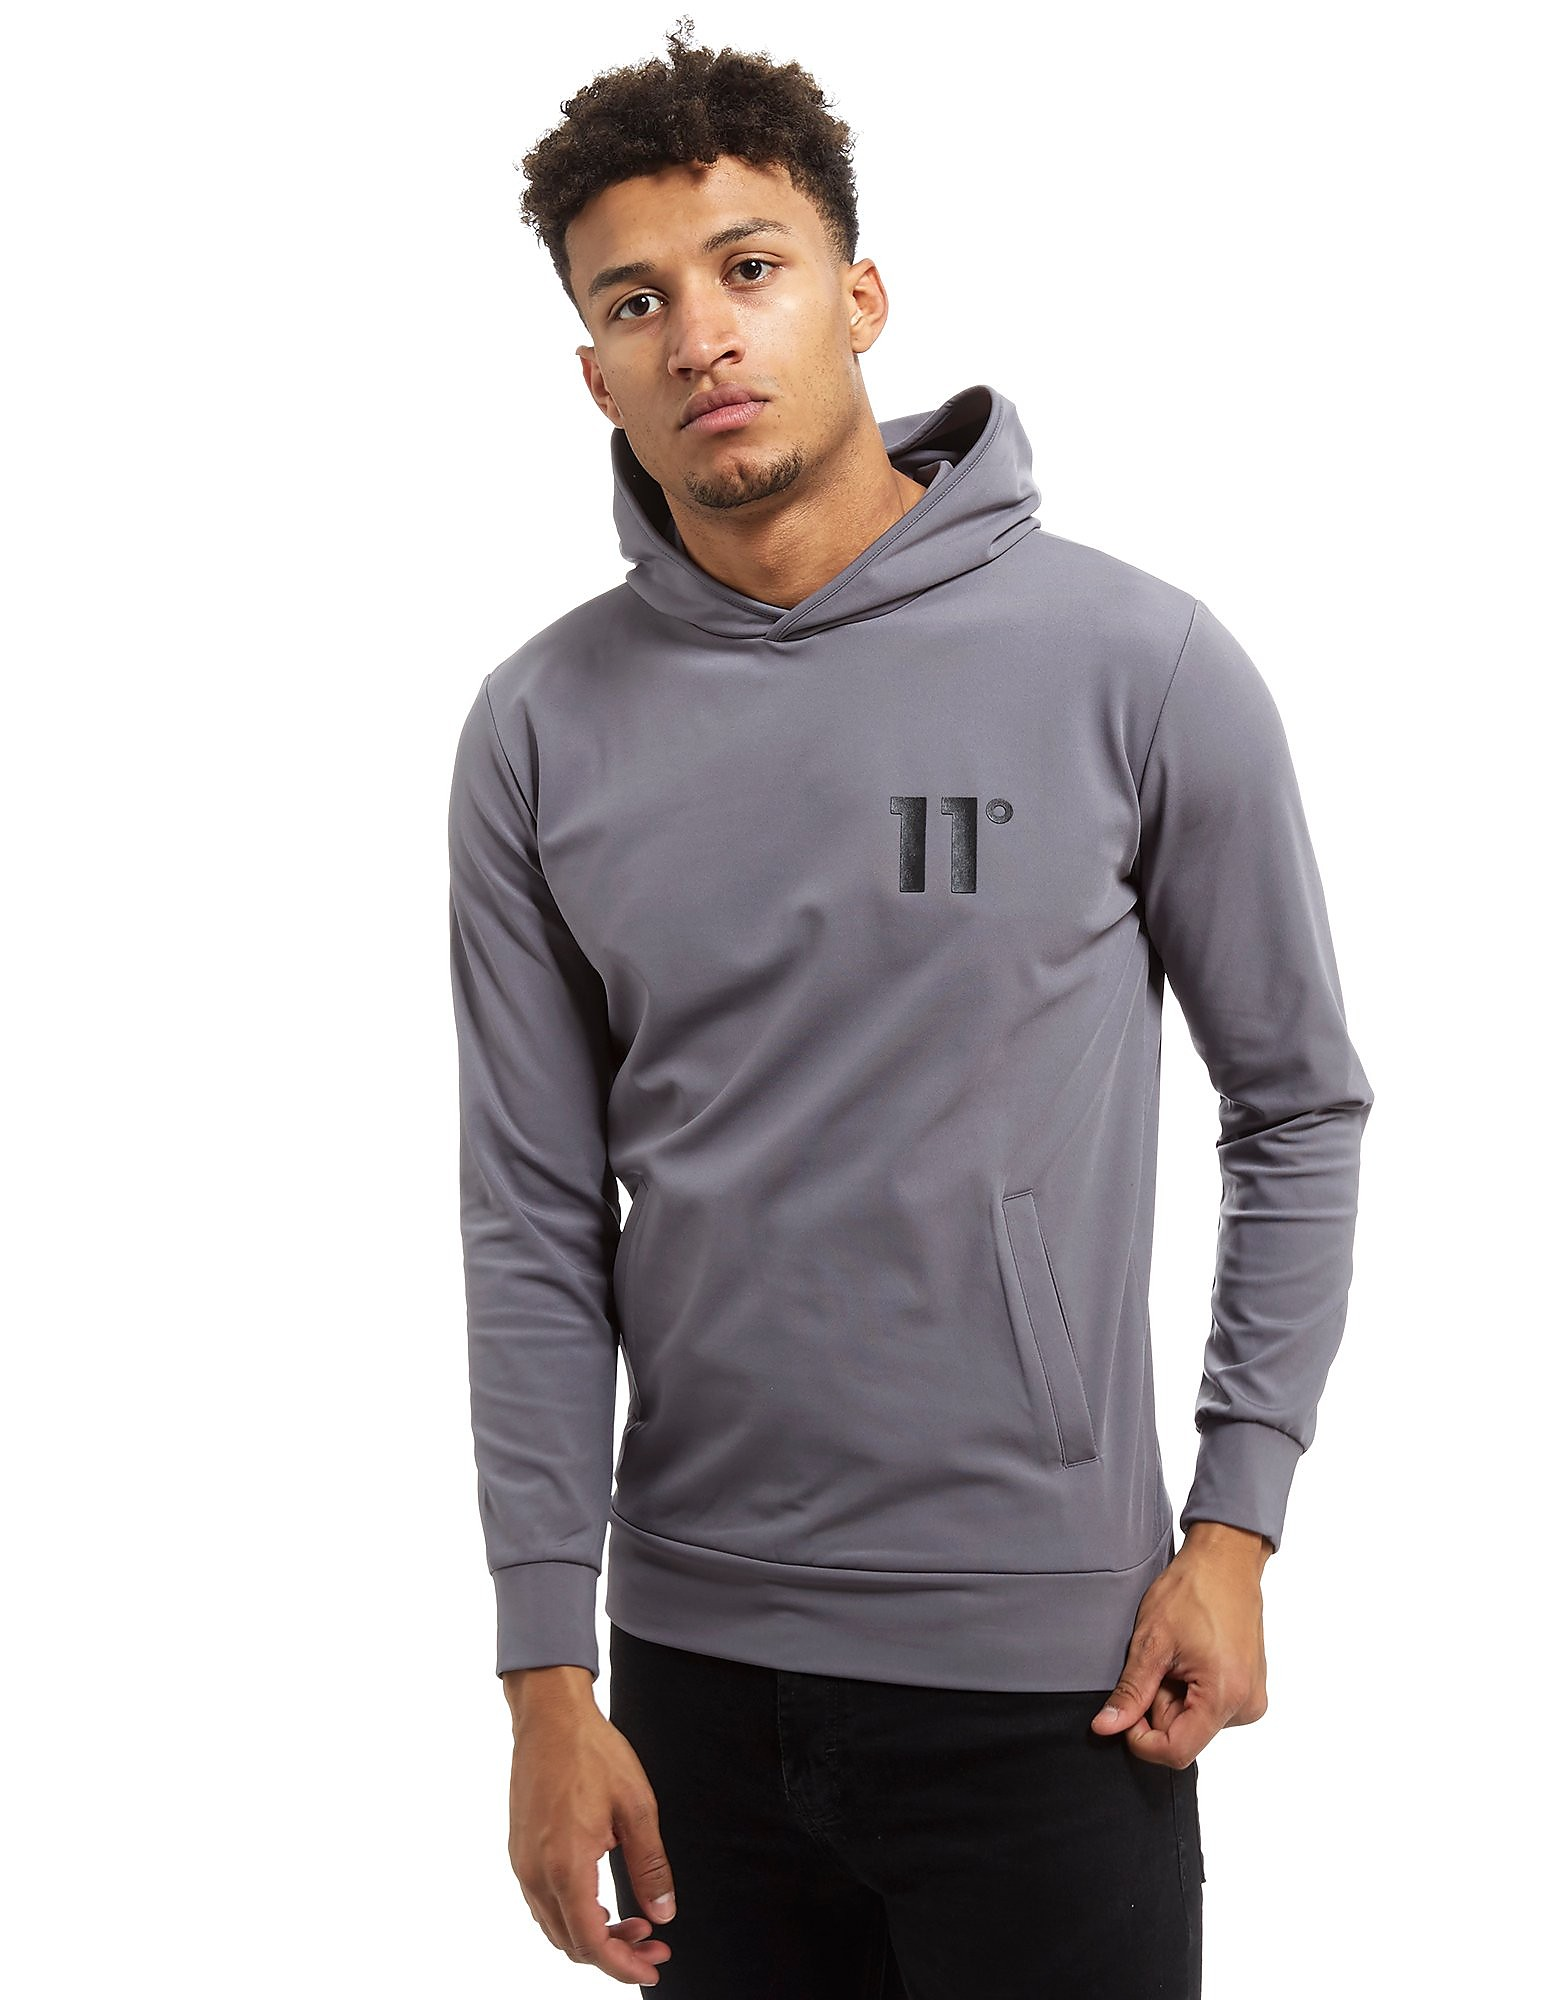 11 Degrees Core Poly Hoodie